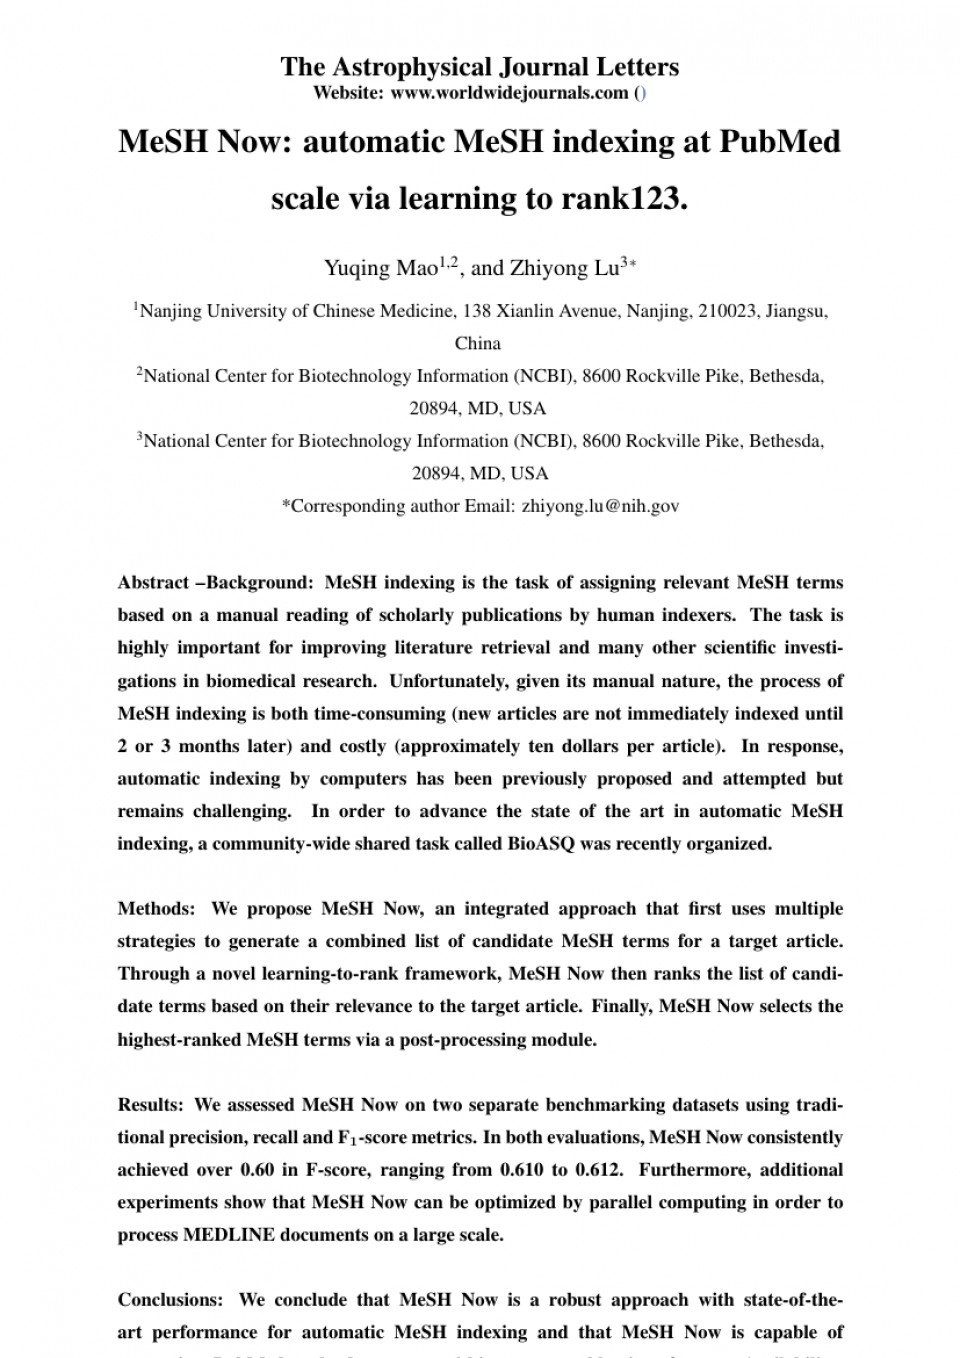 006 Research Paper Order Of Scientific Top Conclusion Example How To Write A Good For Science 960